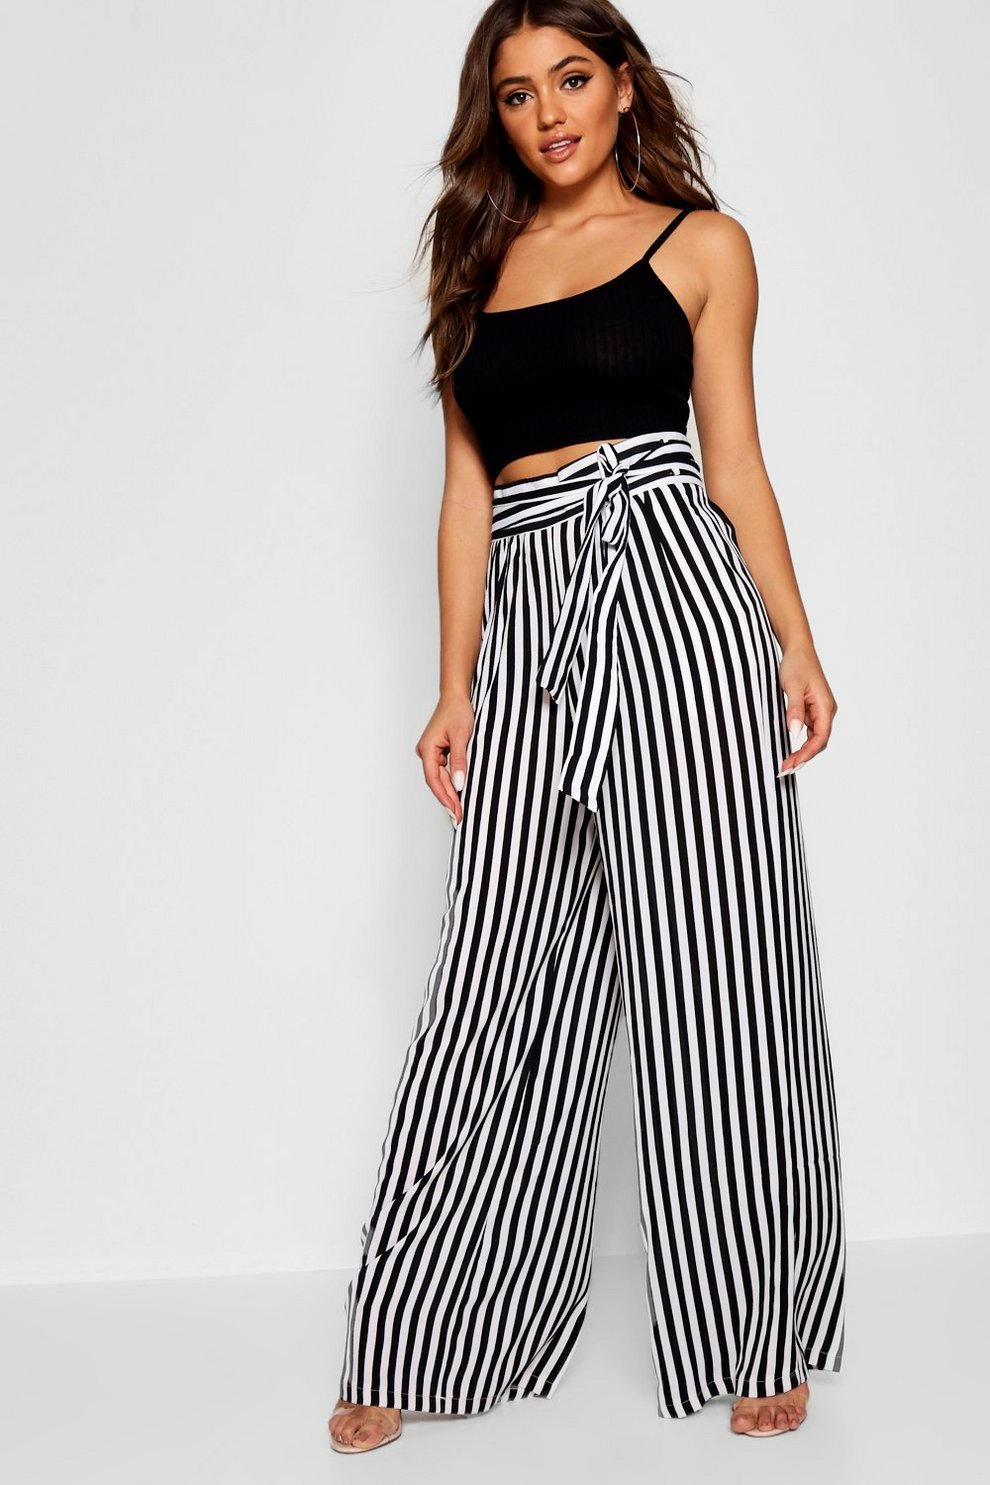 7c915febfdcc Tie Waist Striped Wide Leg Trousers | Boohoo